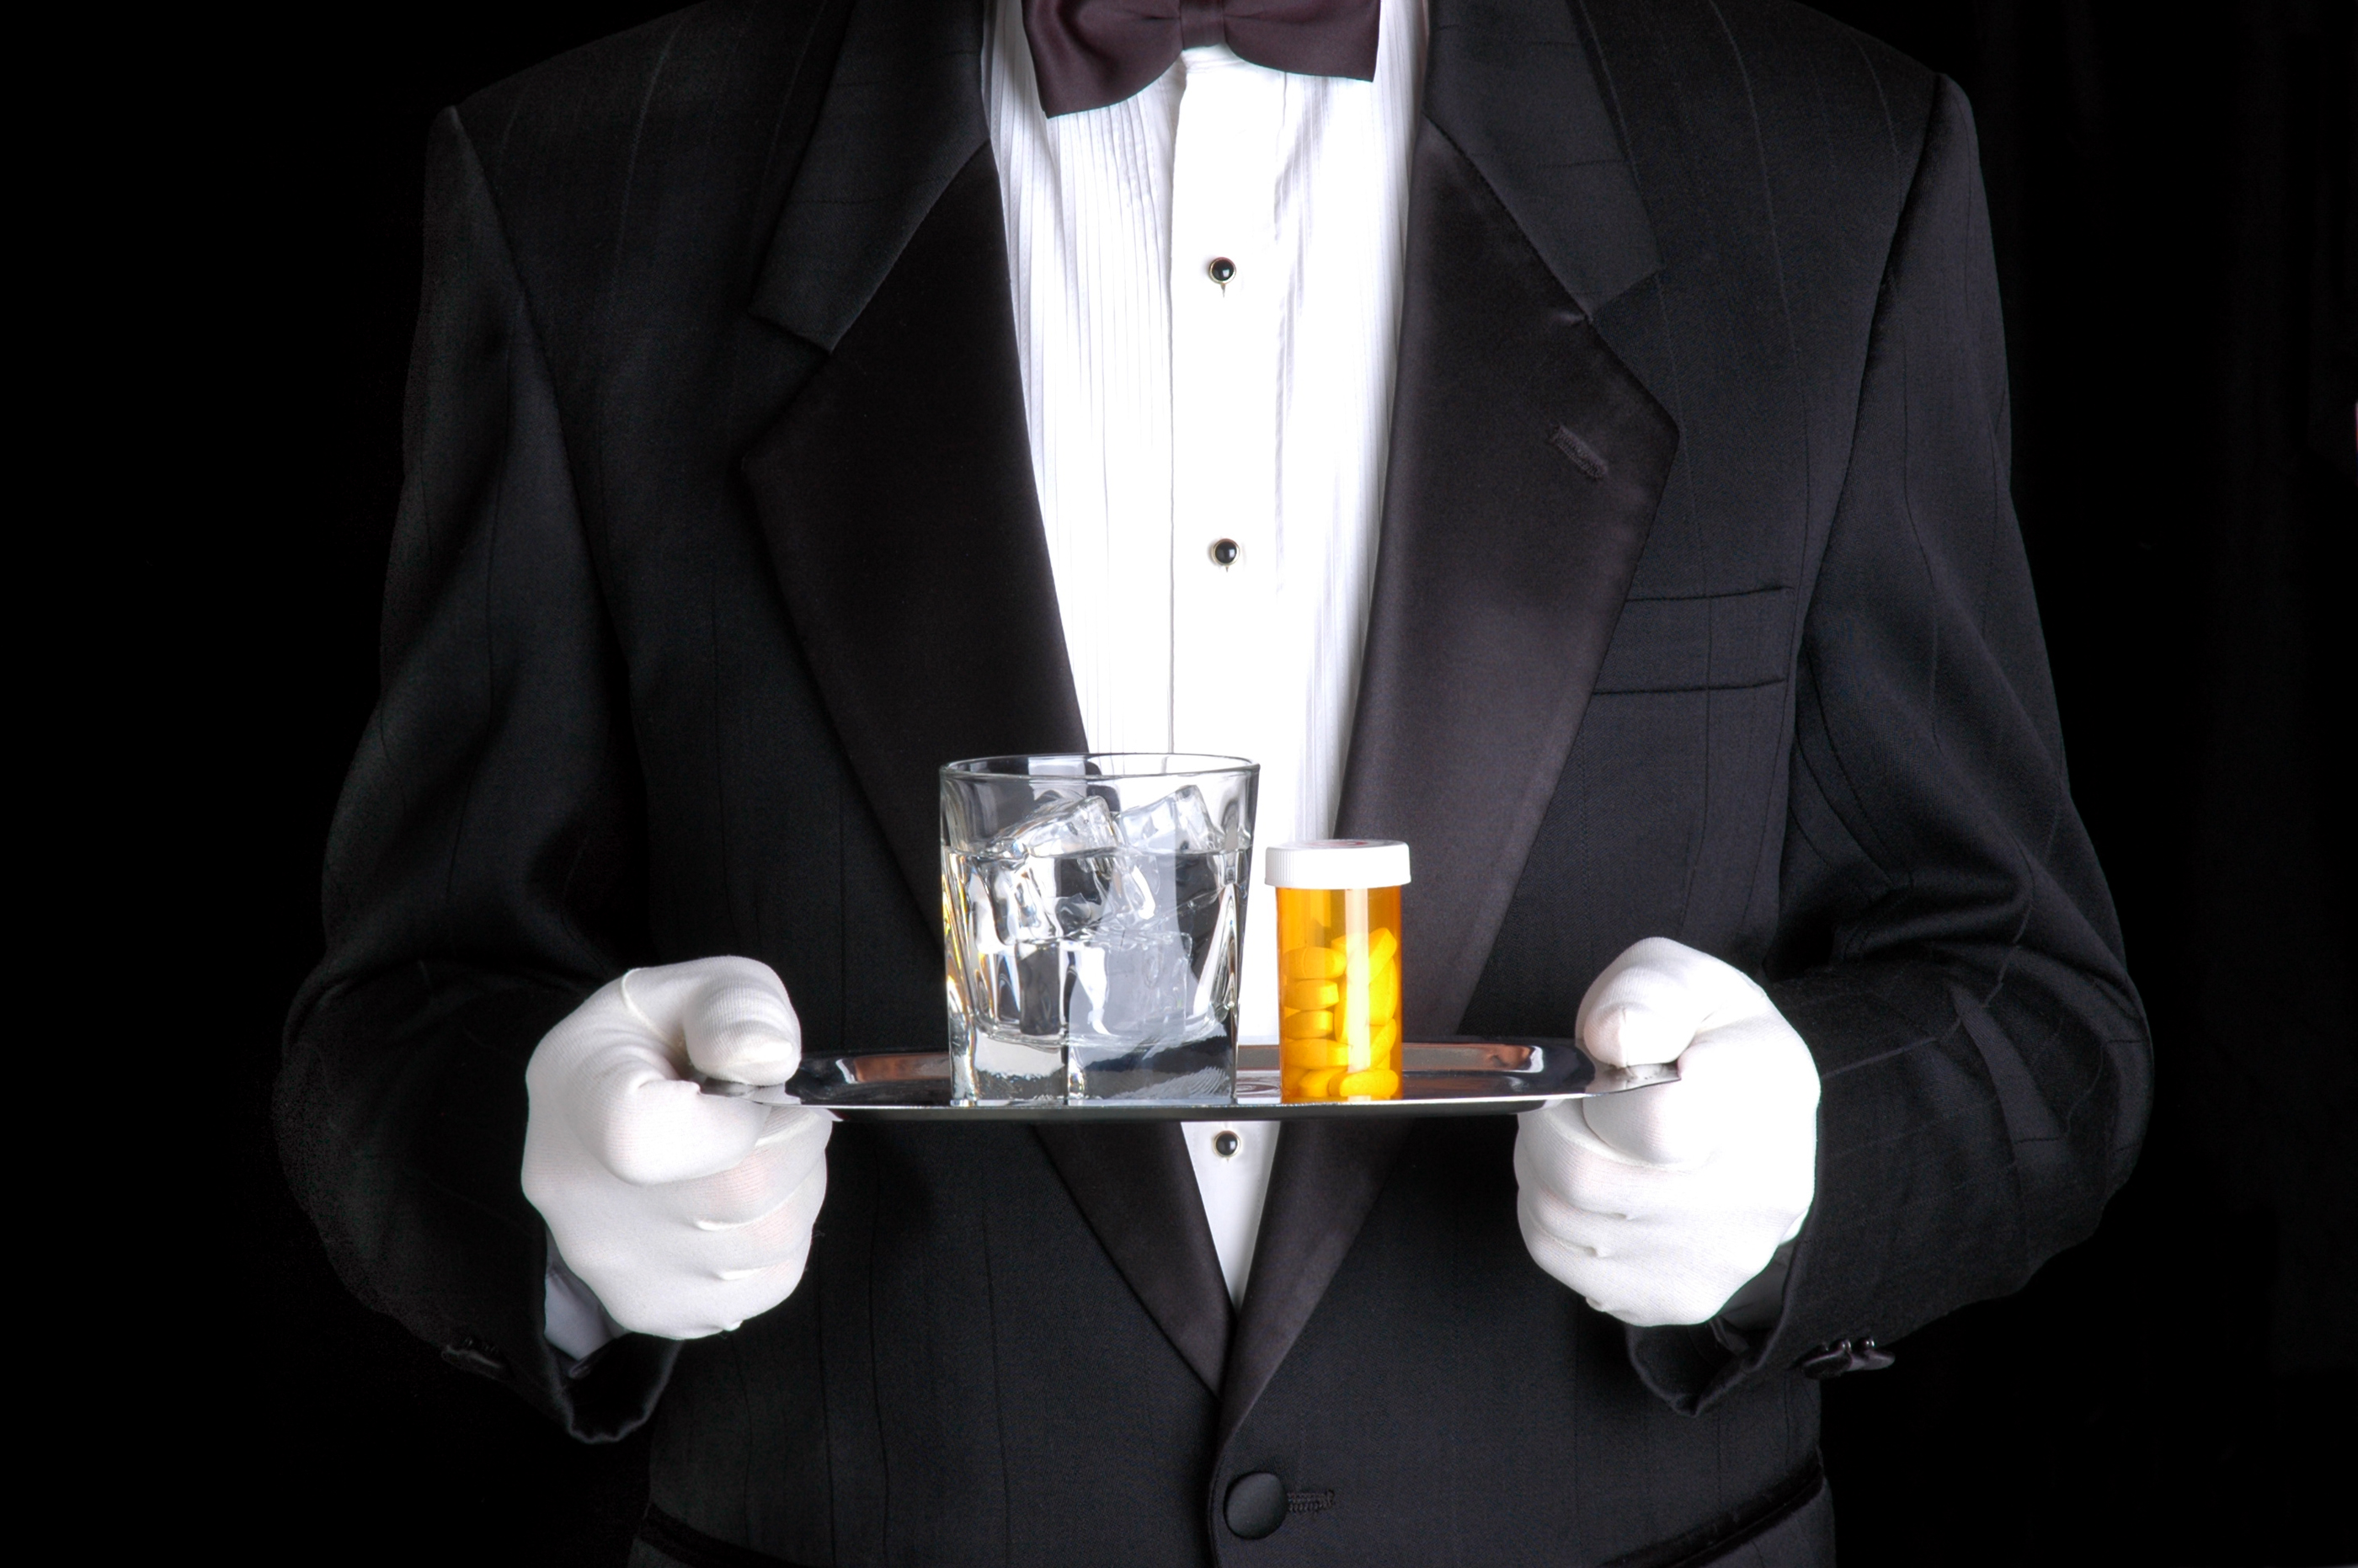 Man Holding Pills and Glass of Water on Silver Tray